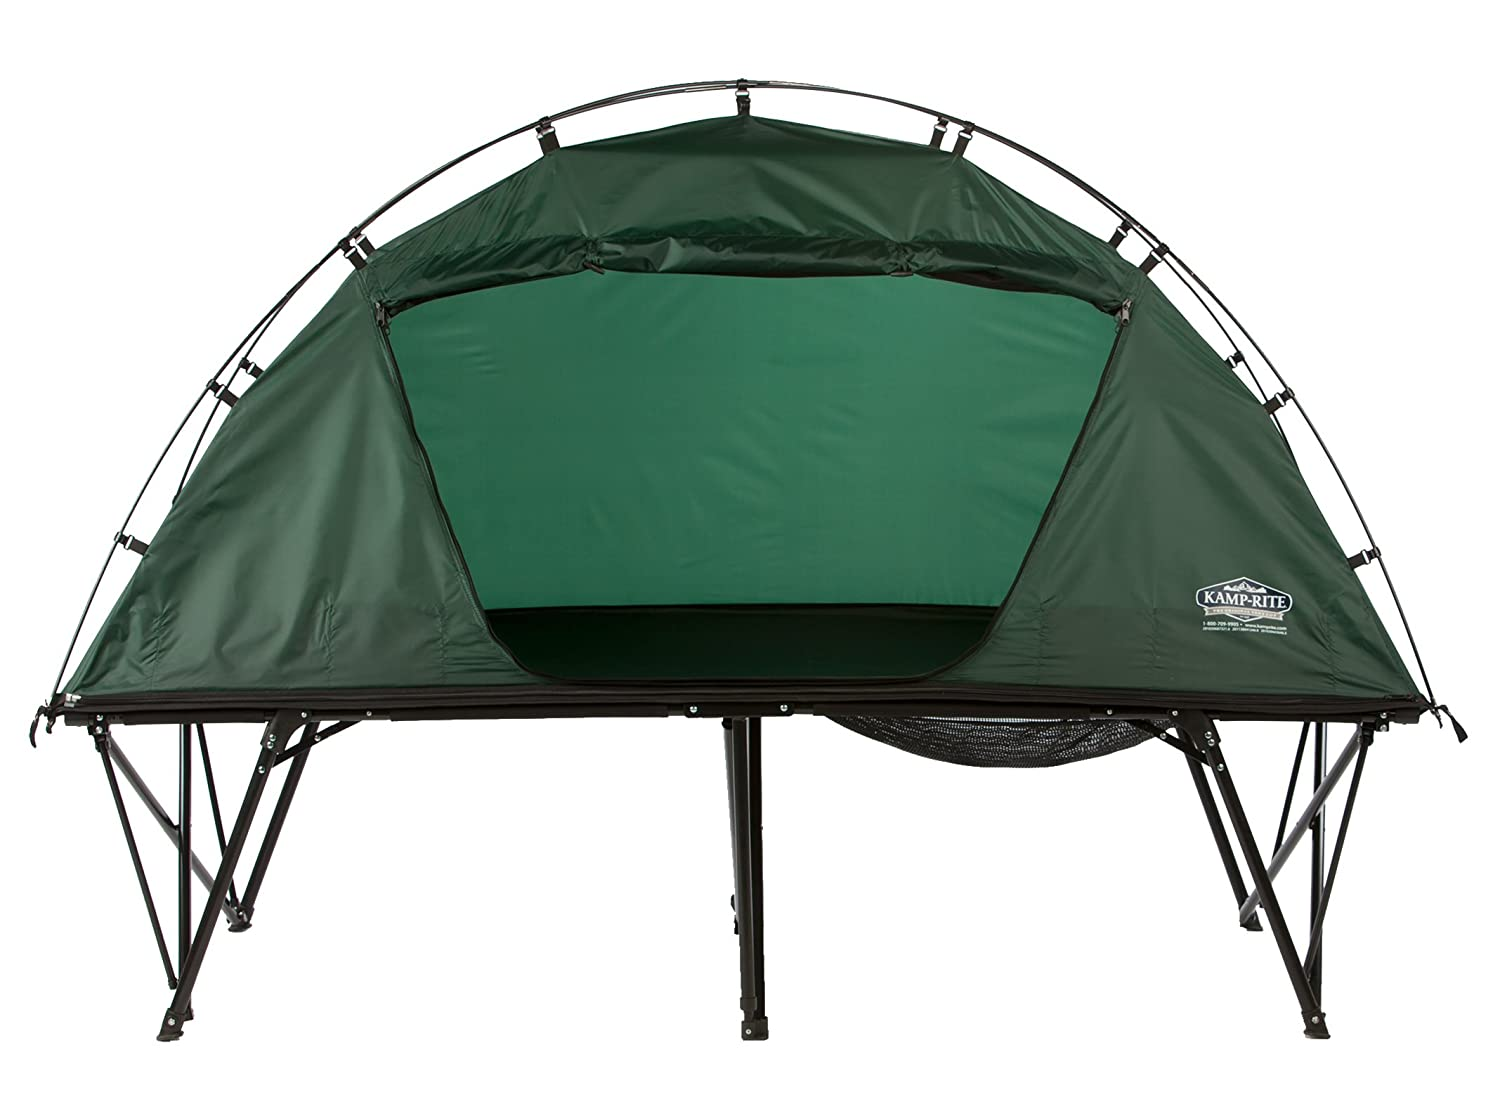 Amazon.com K&-Rite Compact Extra-Large Tent Cot 44x10x10-Inch Sports u0026 Outdoors  sc 1 st  Amazon.com : large photo tent - memphite.com